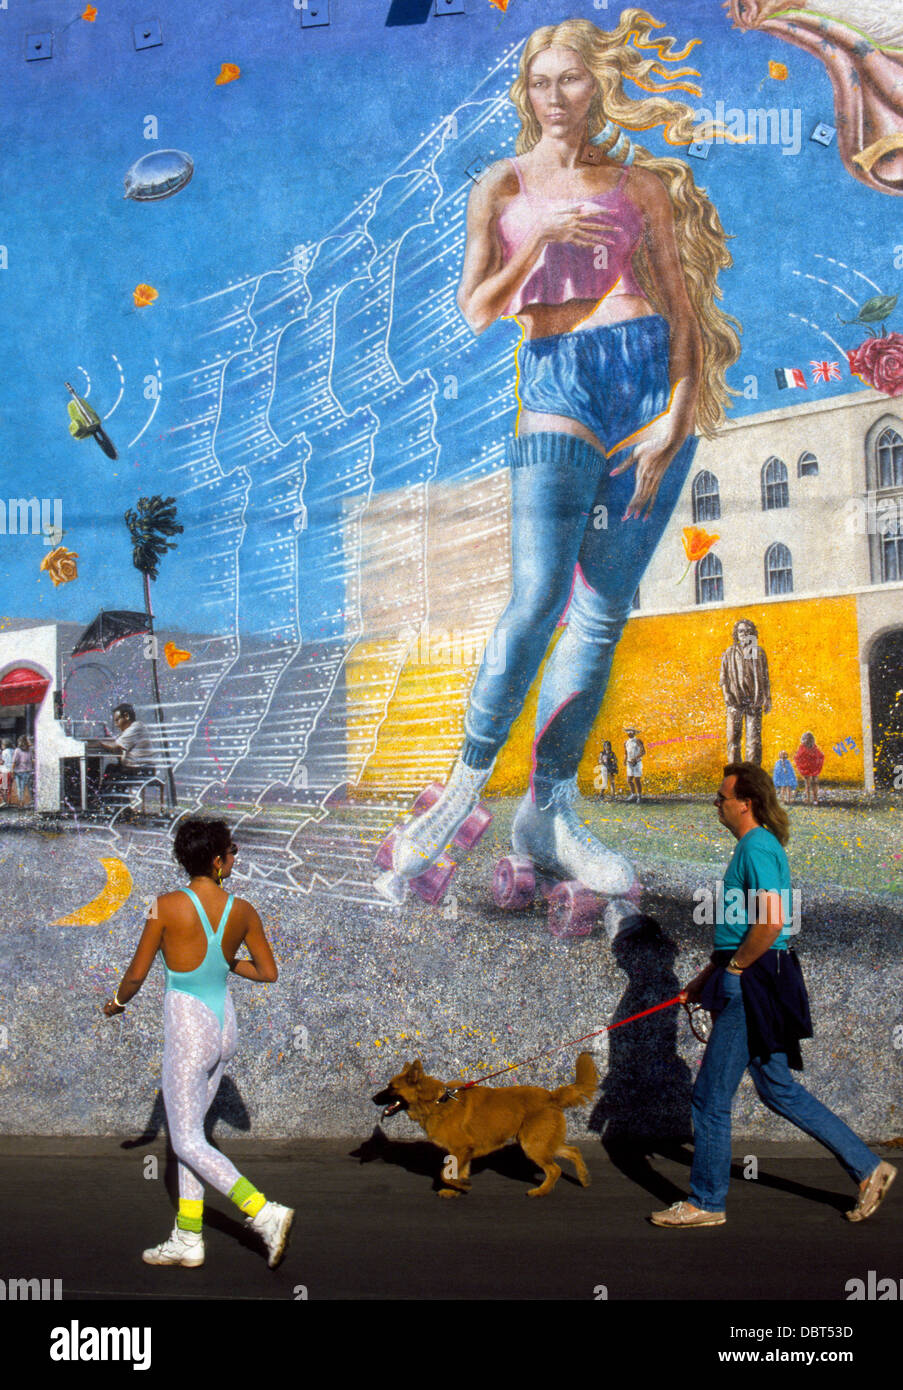 intriguing wall murals like this huge painting of a roller skater intriguing wall murals like this huge painting of a roller skater decorate some buildings along the venice beach boardwalk in venice california usa